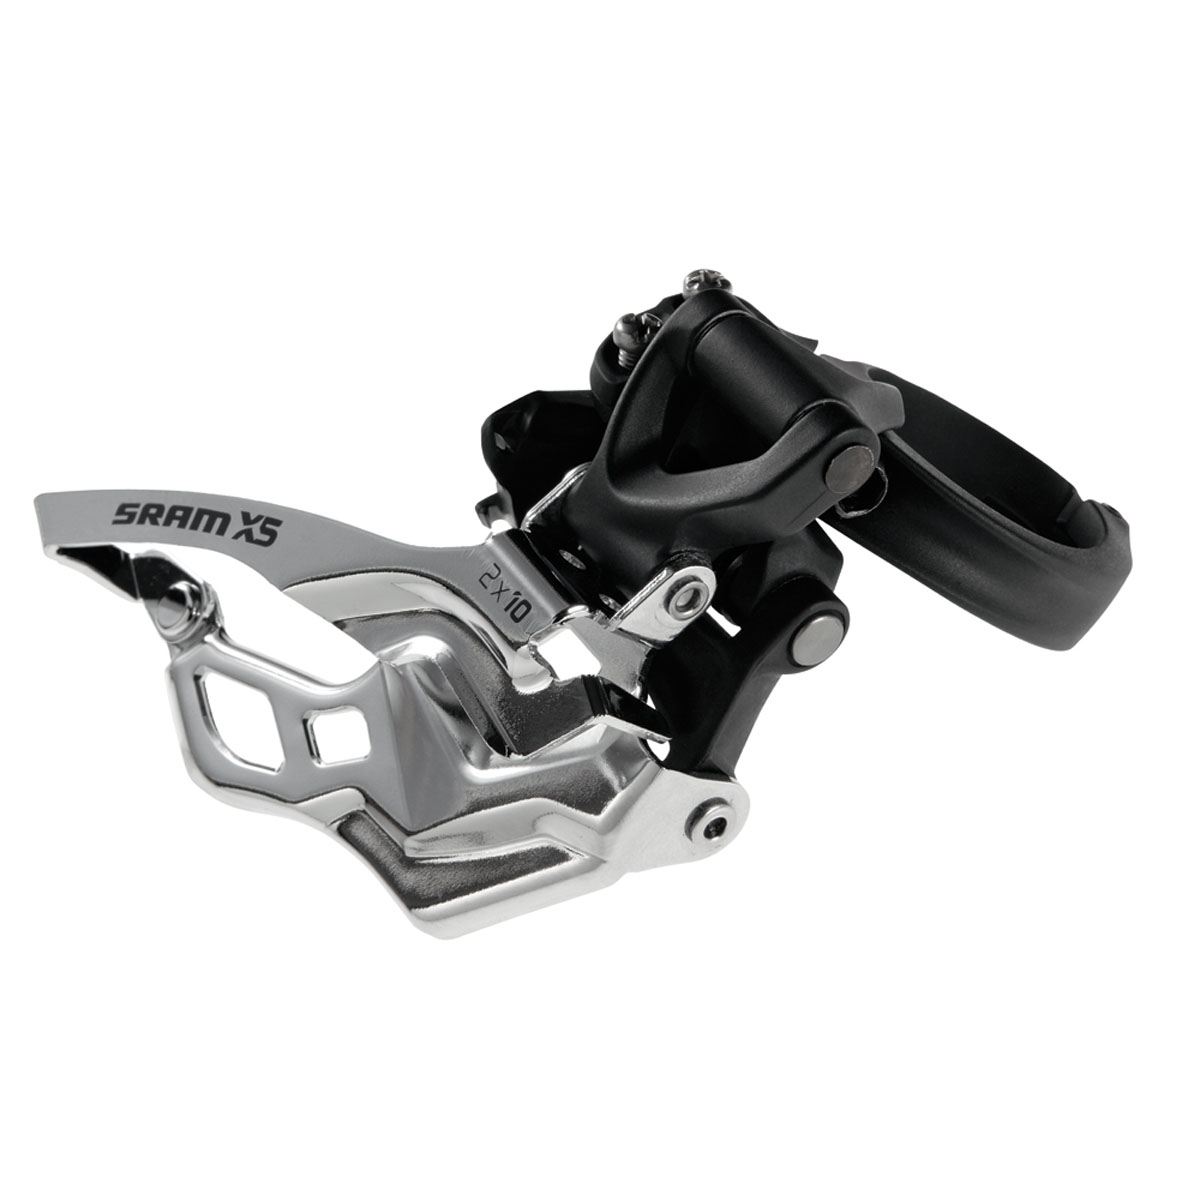 SRAM X5 Clamp Mounted Mountain Bicycle Front Derailleur